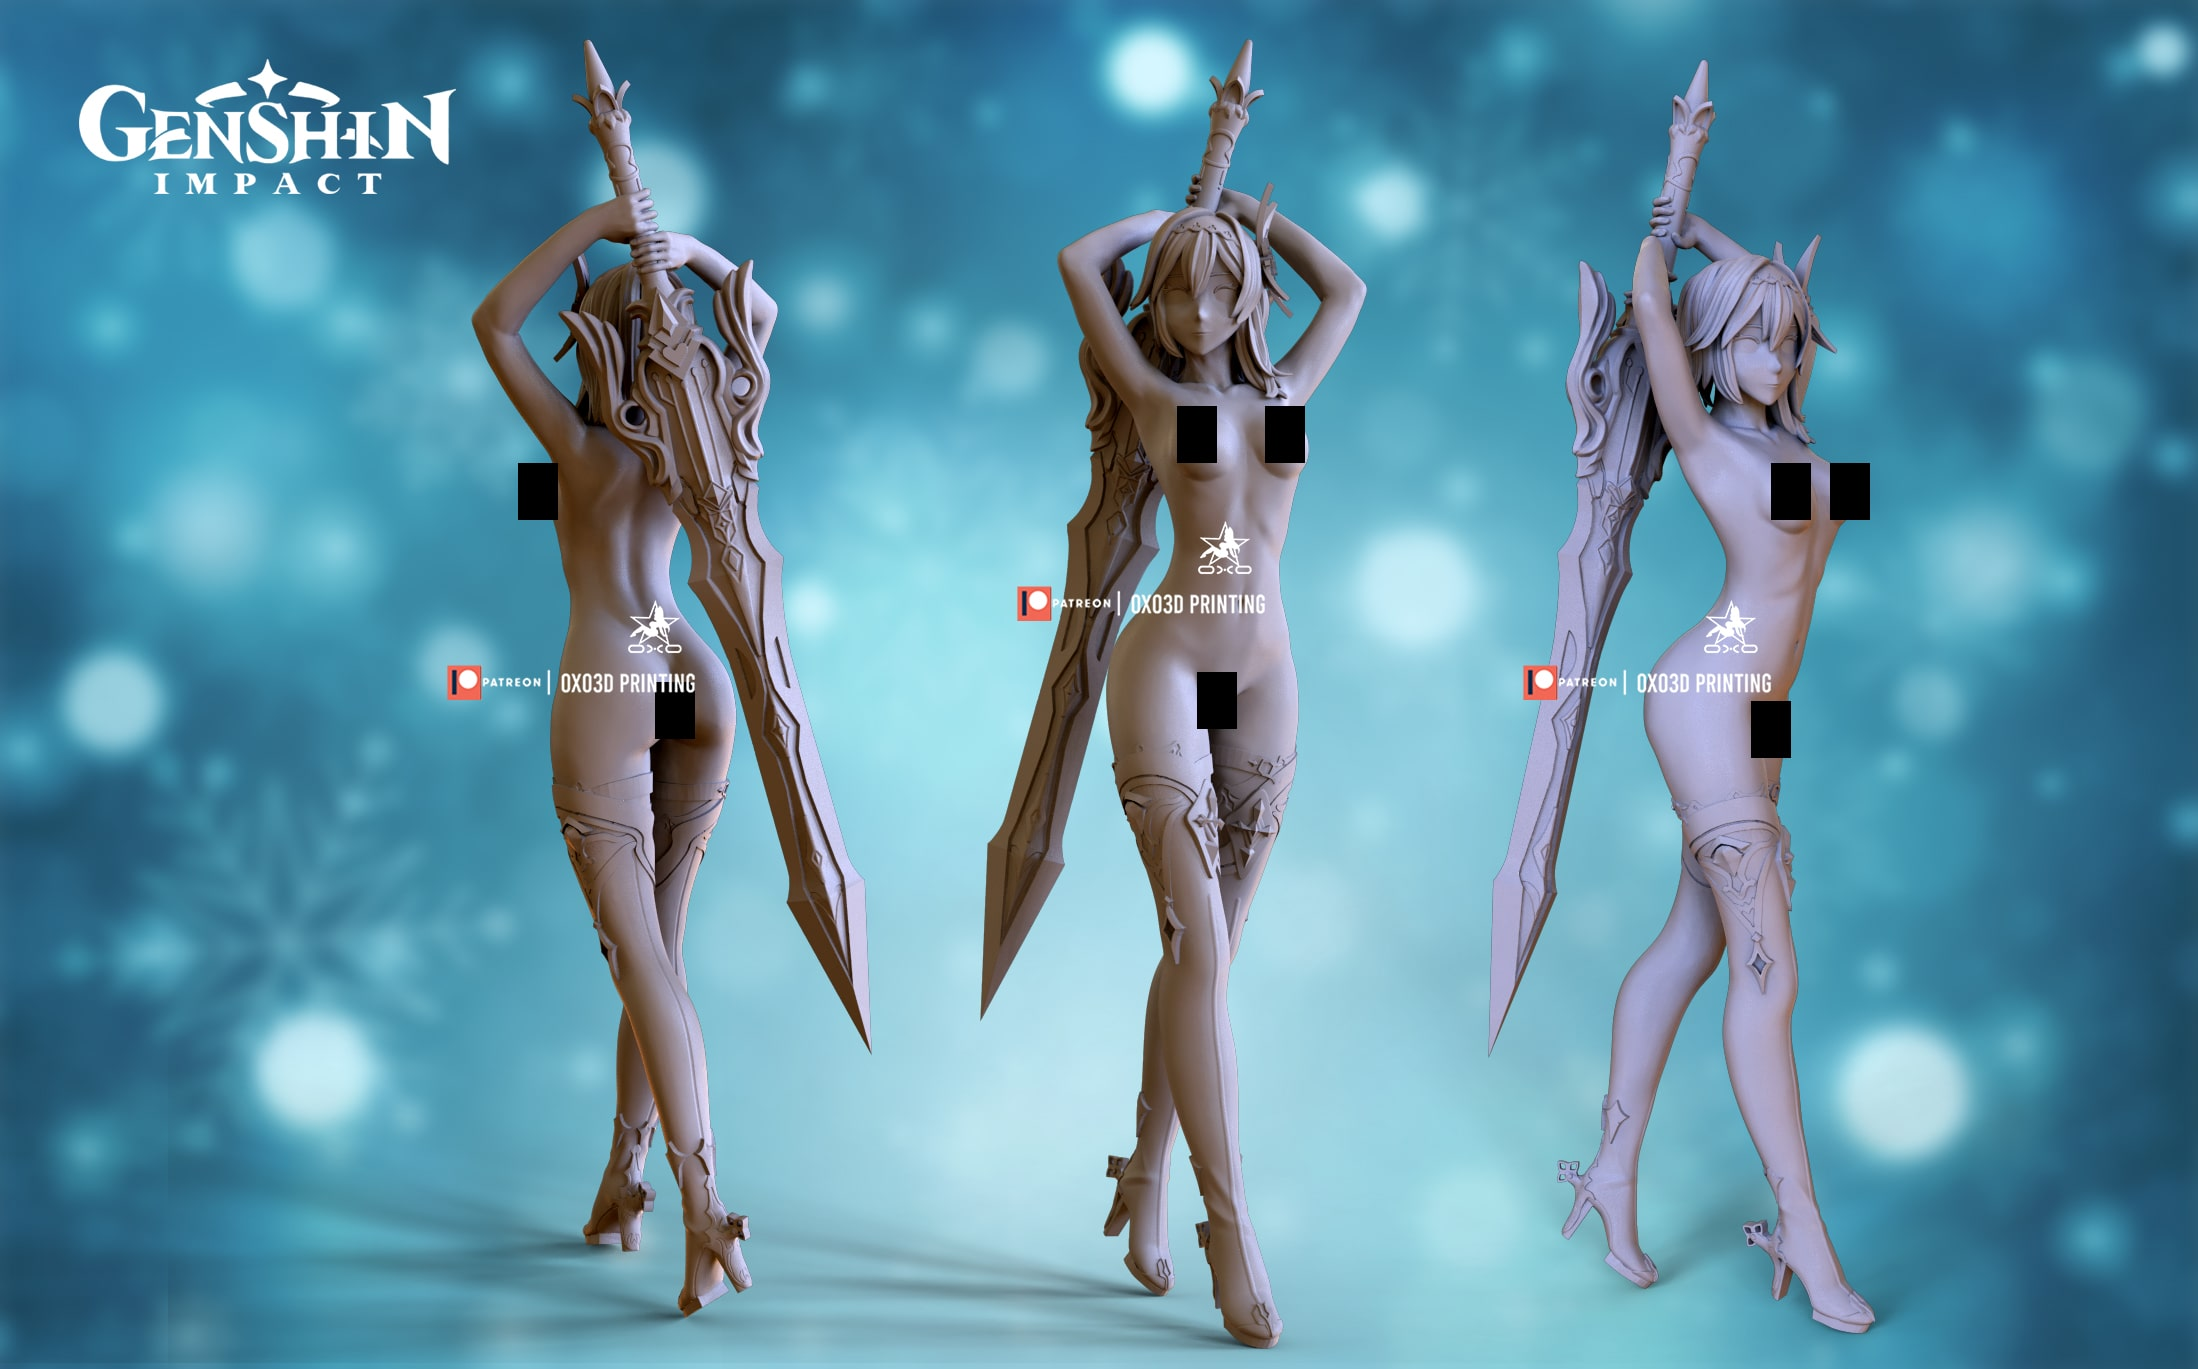 Eula/Yura From Genshin Impact 3D Print STL File - NSFW version without color